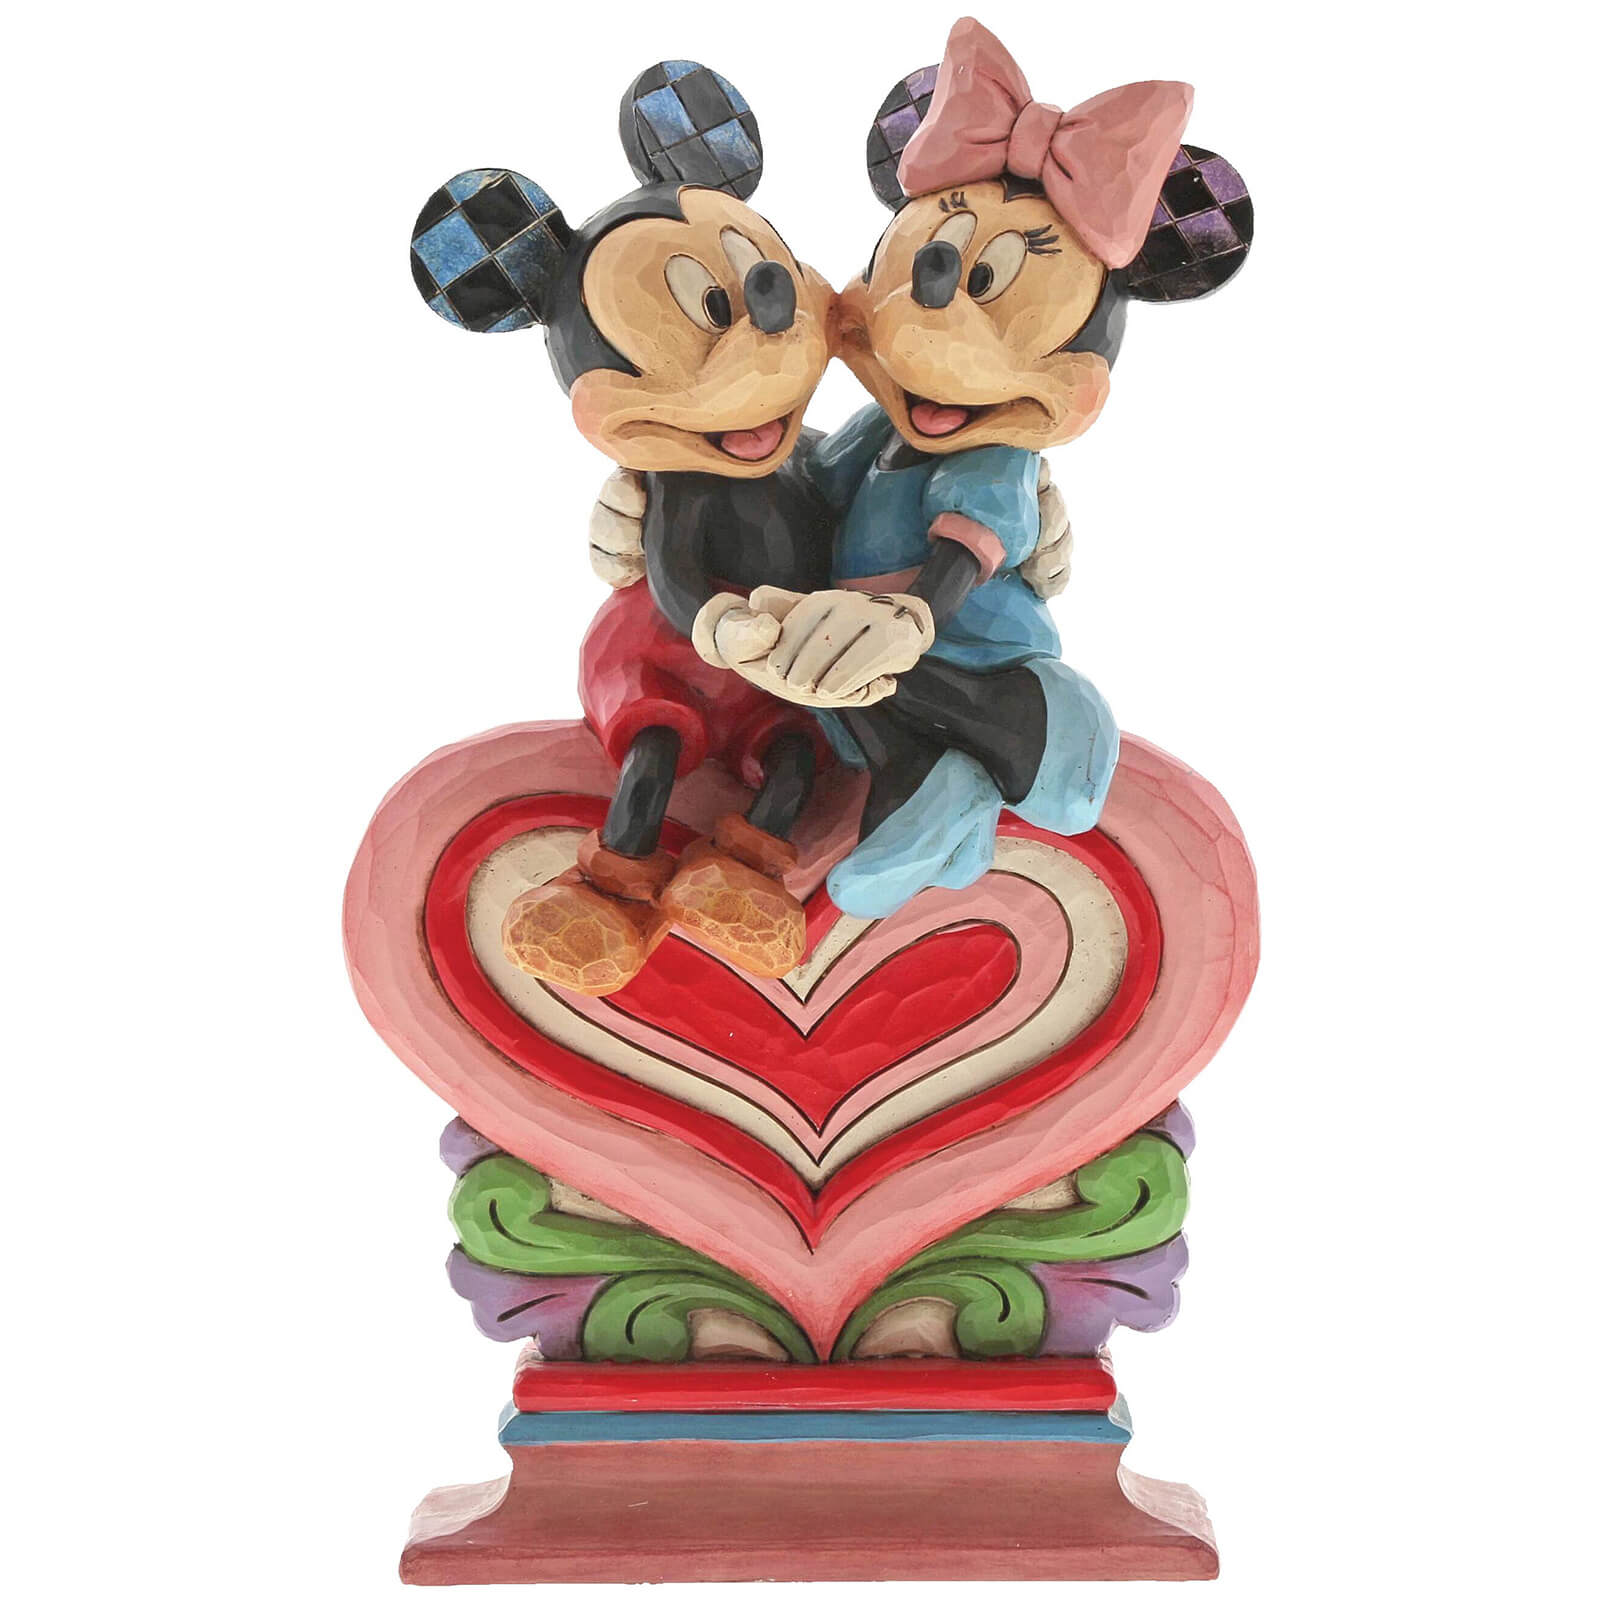 Image of Disney Traditions Heart to Heart (Mickey Mouse and Minnie on Heart Figurine) 17.5cm